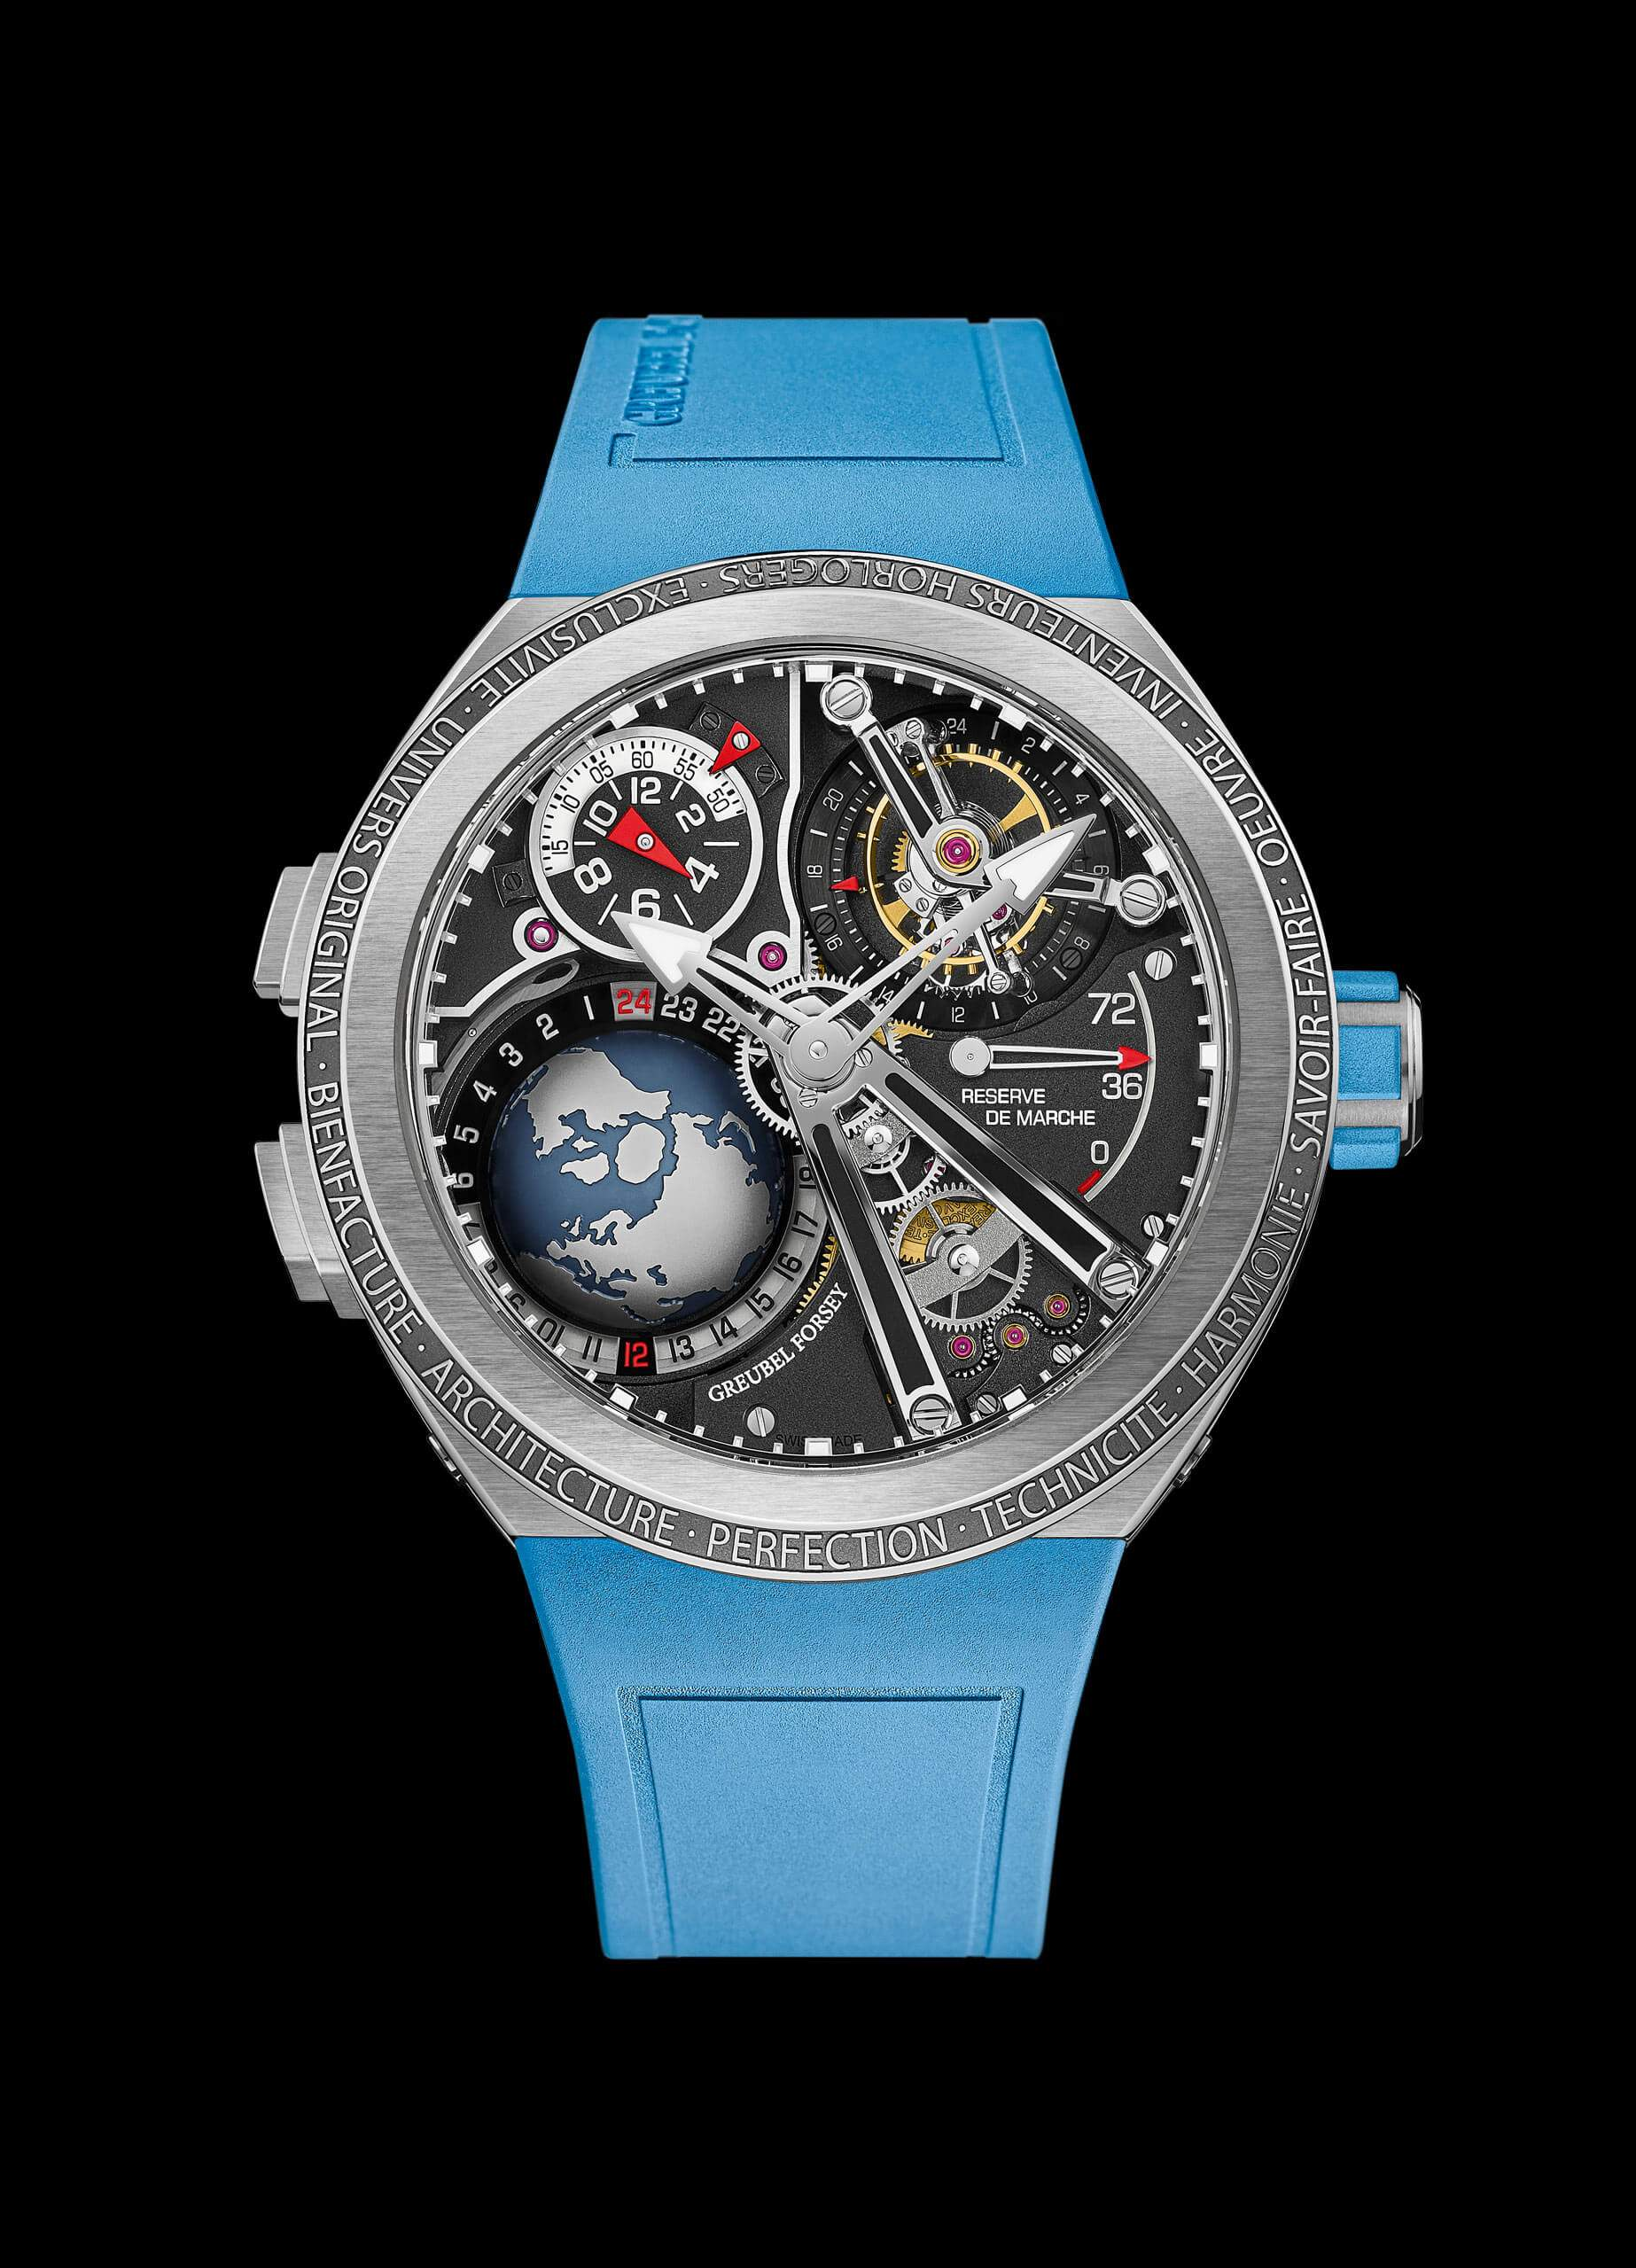 The new Greubel Forsey GMT Sport is full of interesting details, including a 3D globe between 7 and 9 o'clock.